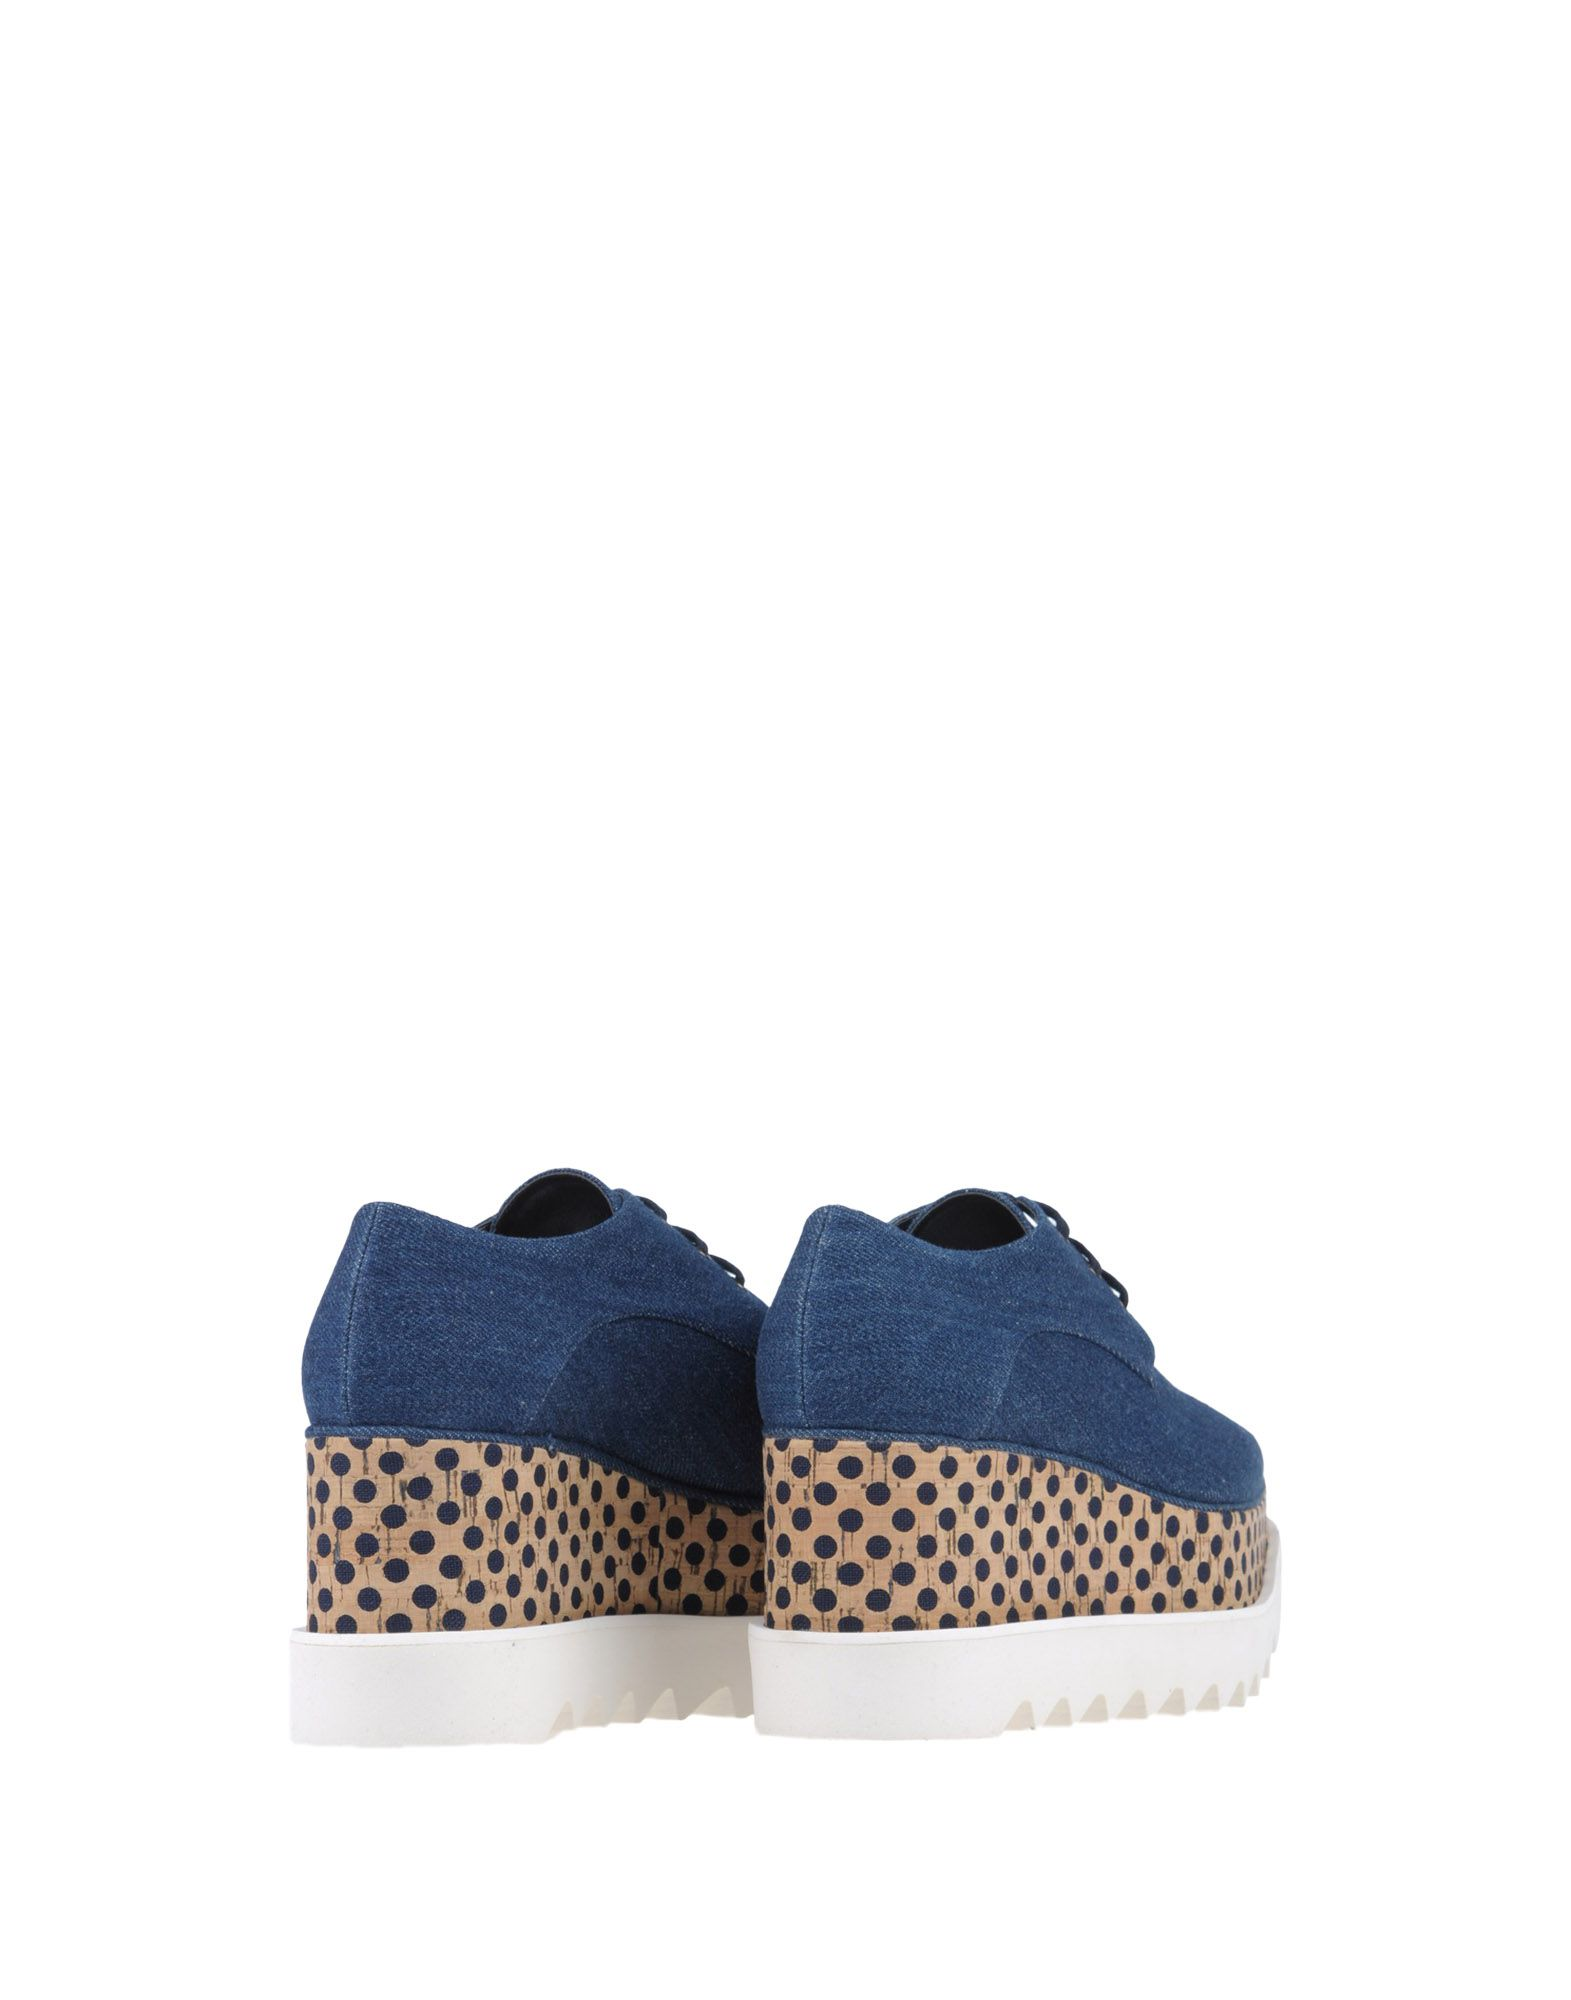 CHAUSSURES - Chaussures à lacetsLocker 41 lmA6GRdkn